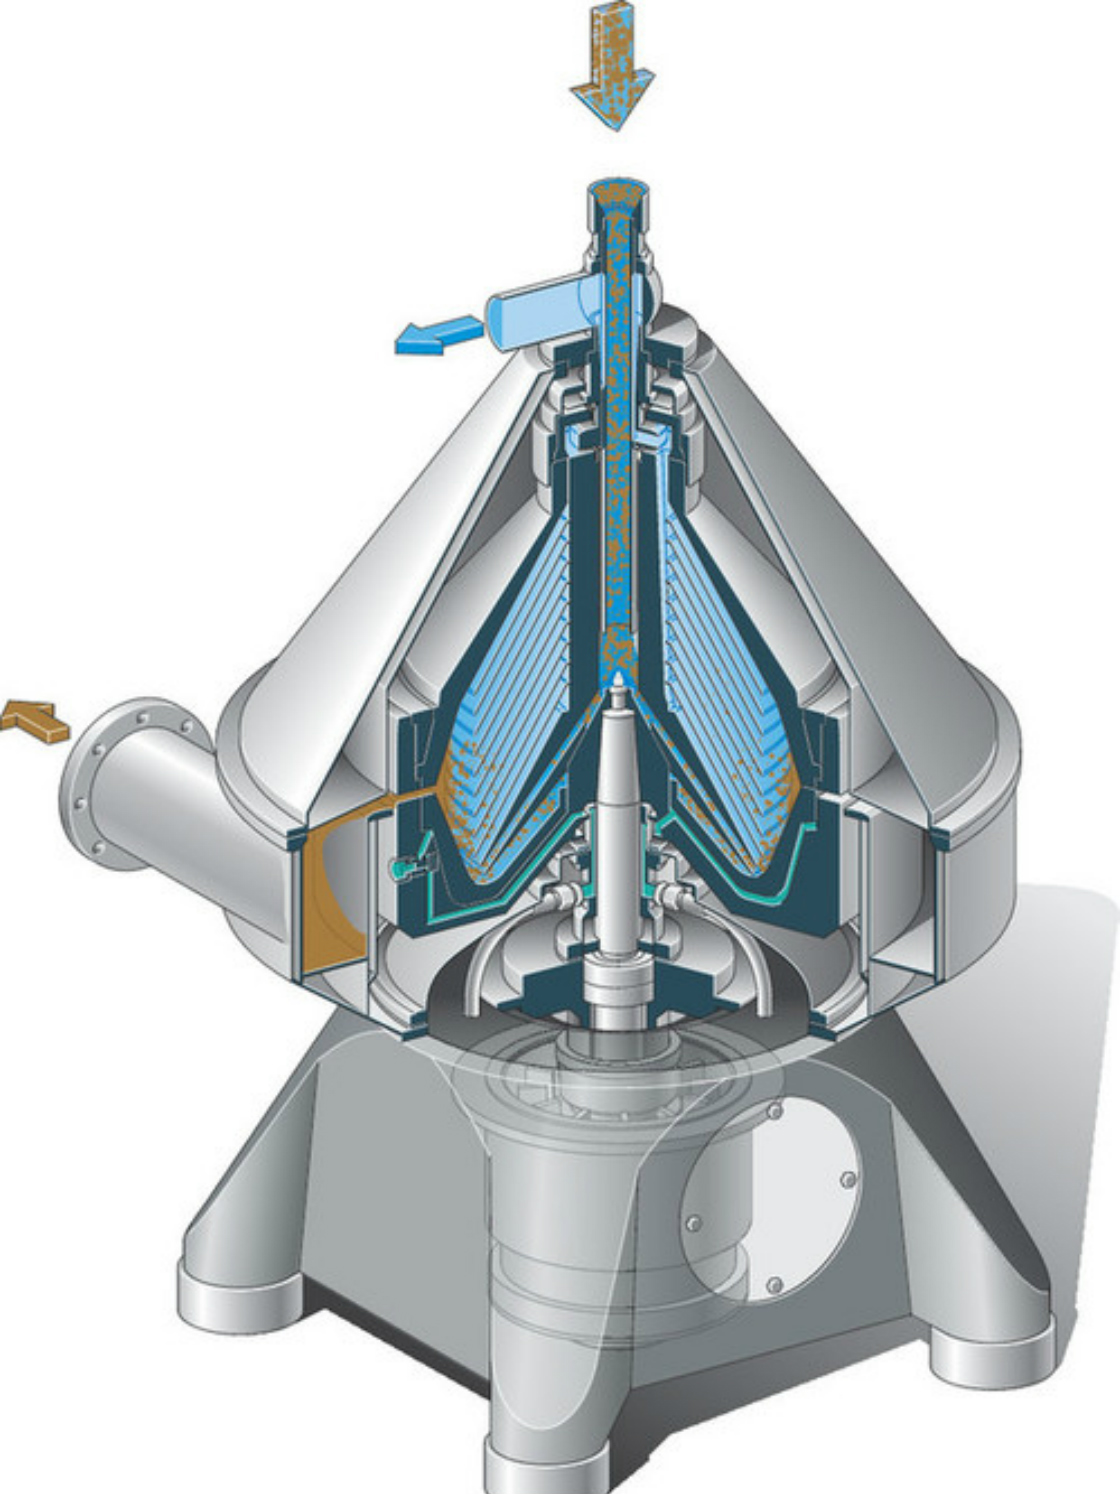 Cross-section view of a GEA separator showing liquid flow pattern, including discharge system.